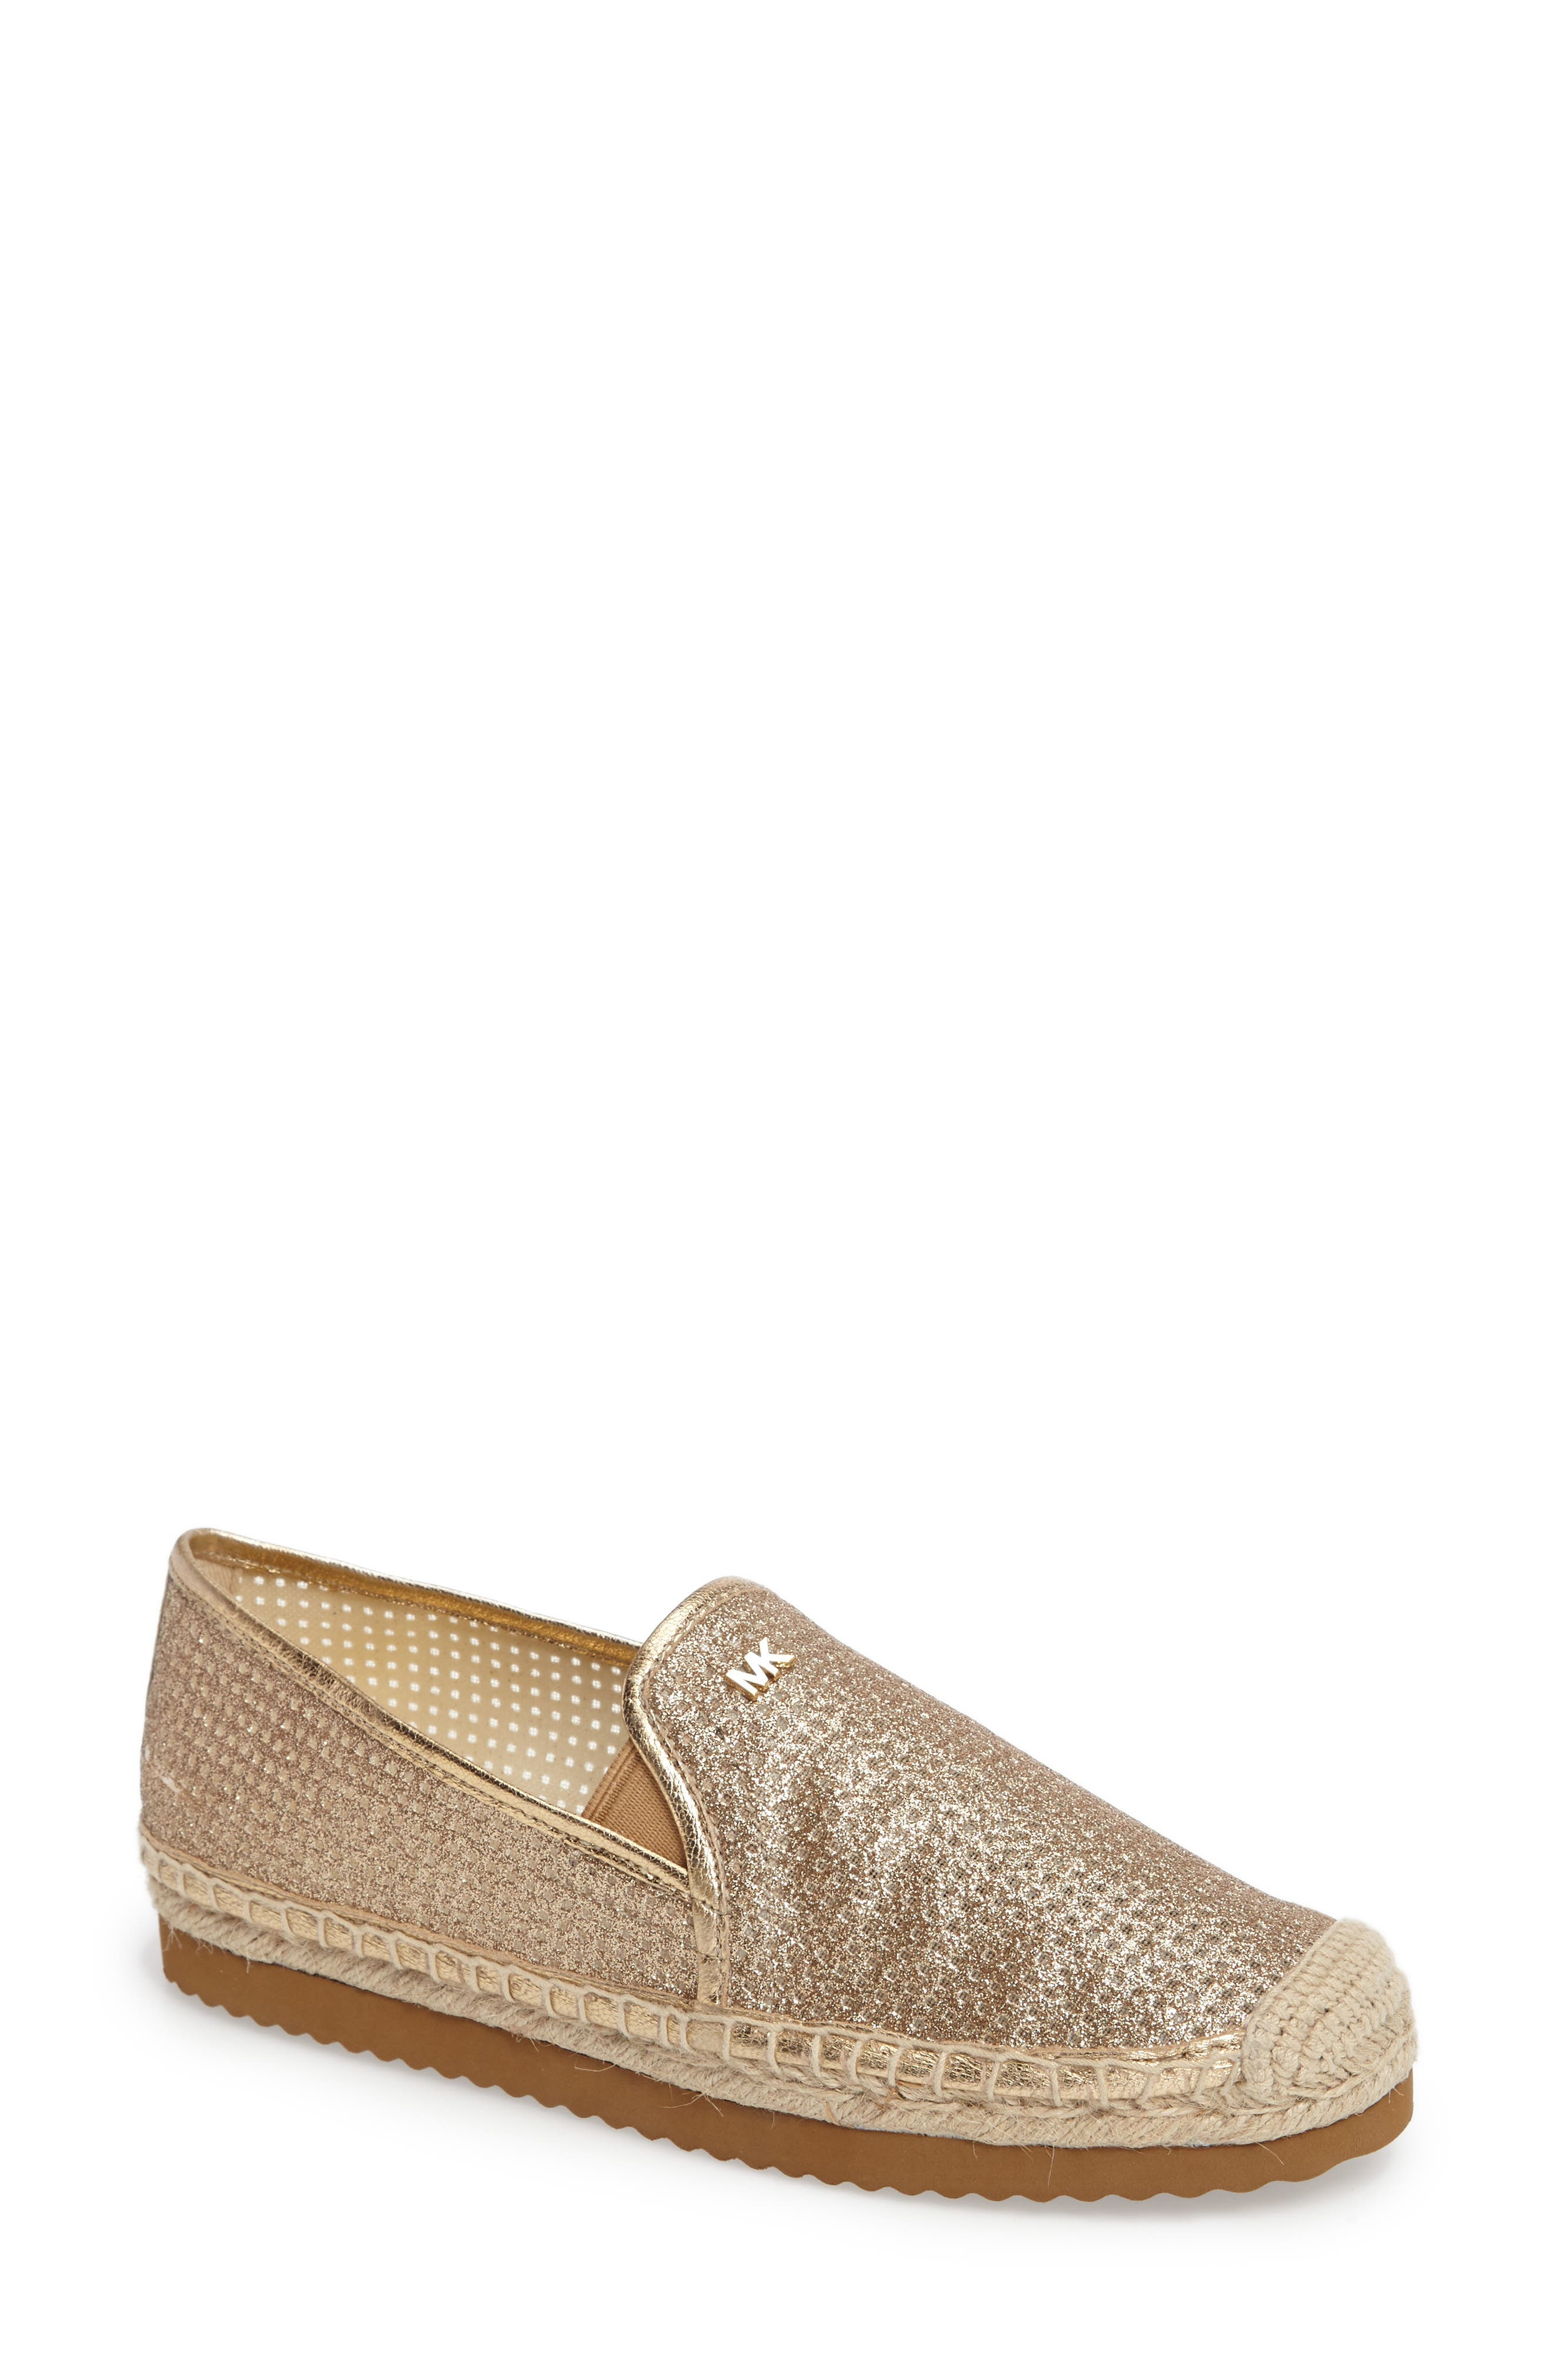 Hastings Espadrille Slip-On,                             Main thumbnail 6, color,